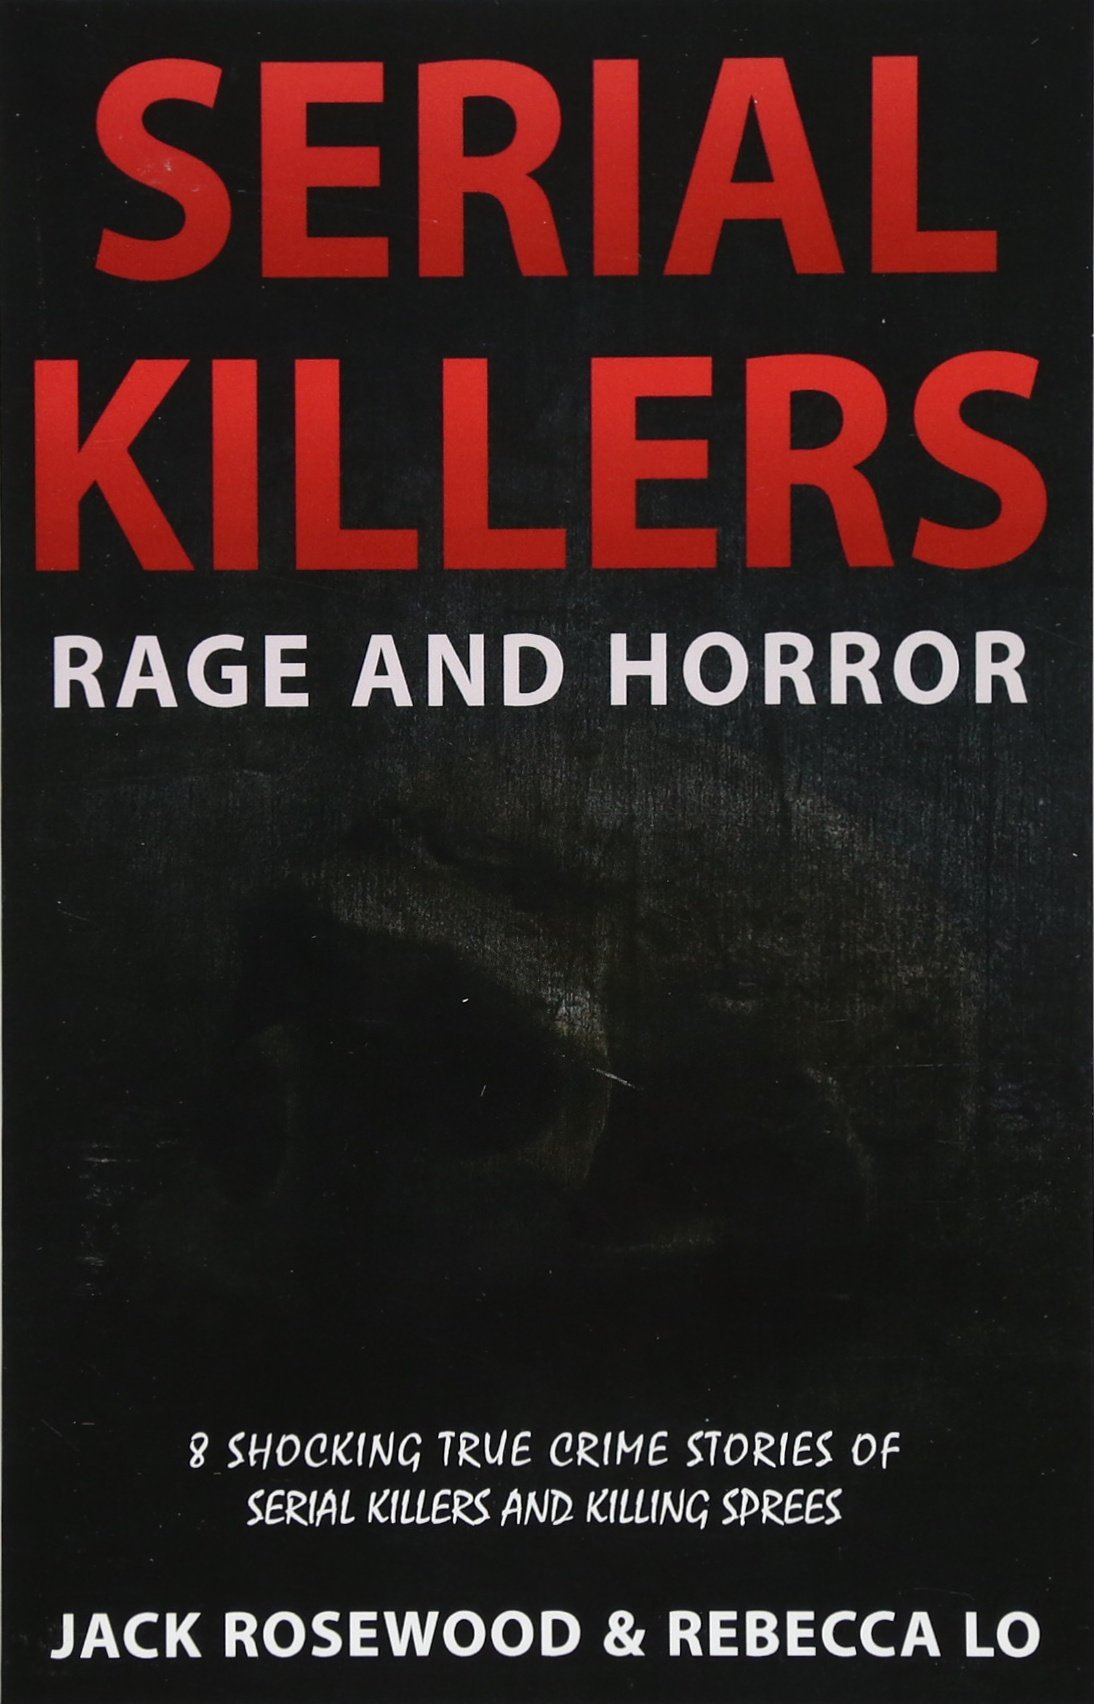 Download Serial Killers Rage and Horror: 8 Shocking True Crime Stories of Serial Killers and Killing Sprees (Serial Killers Anthology) (Volume 1) PDF